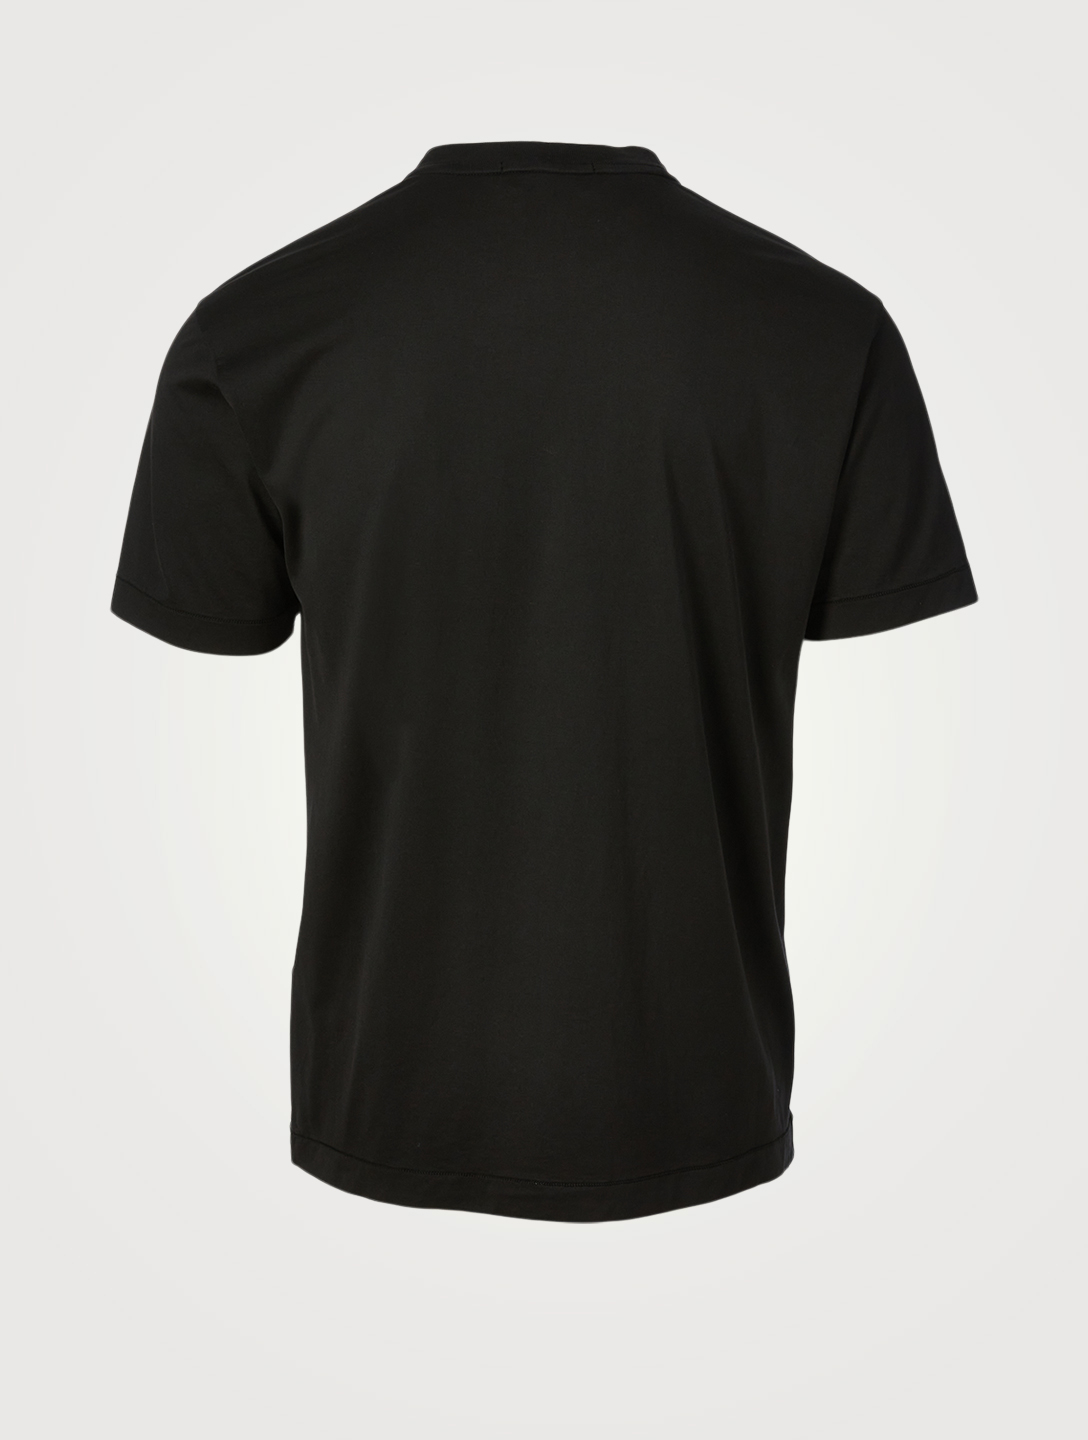 STONE ISLAND Cotton Short-Sleeve T-Shirt Men's Black